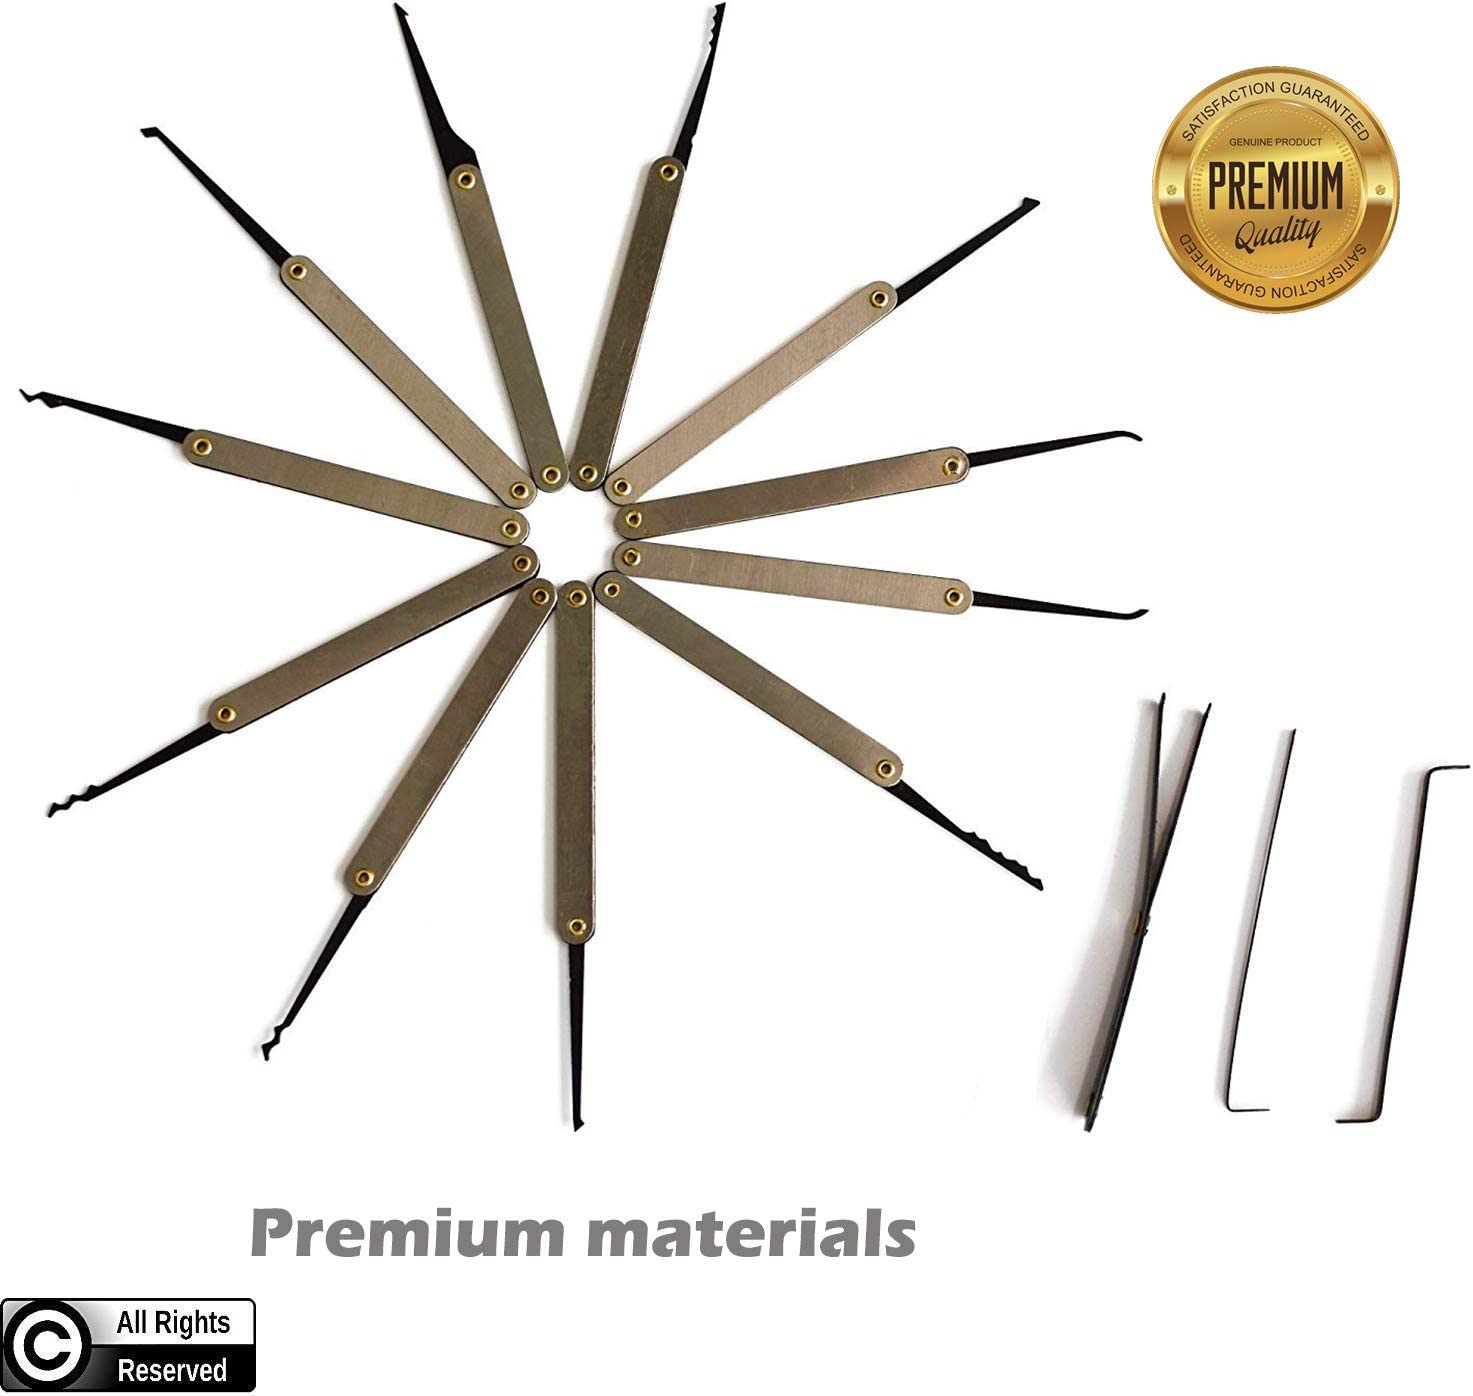 Sawyer Product Stainless Steel Lock Set Big Pack